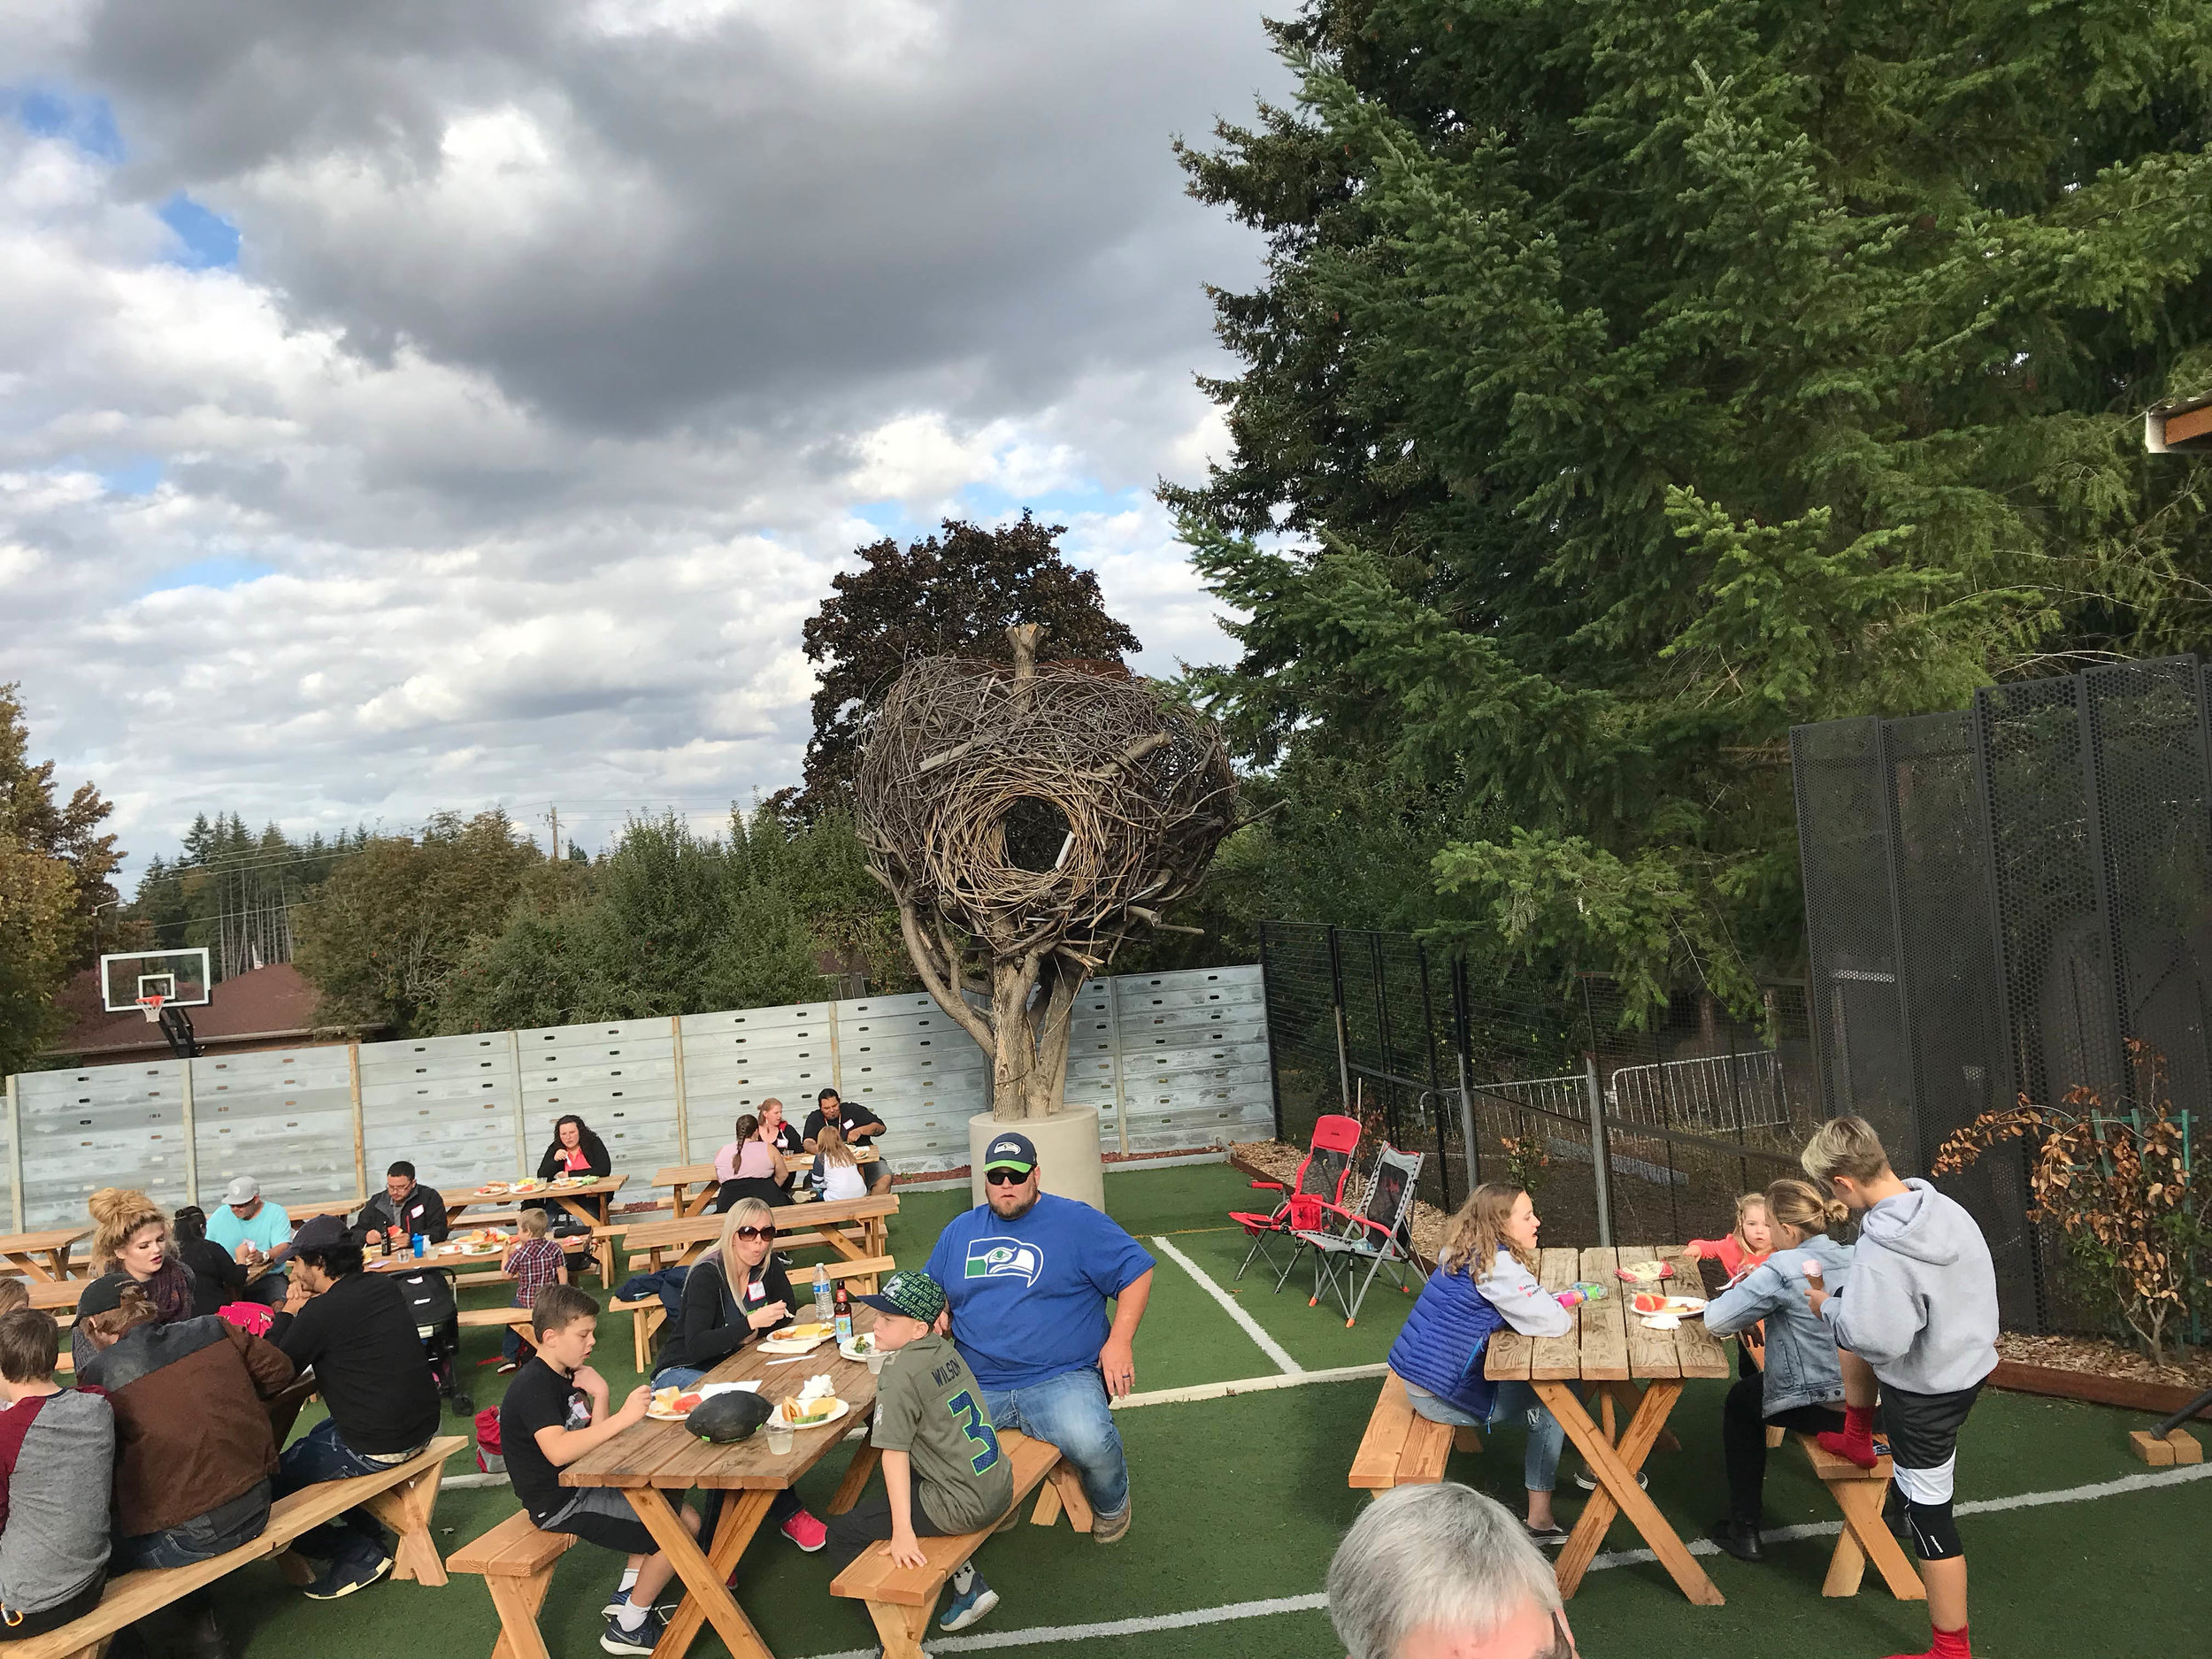 Company picnic w/ the nest in the background